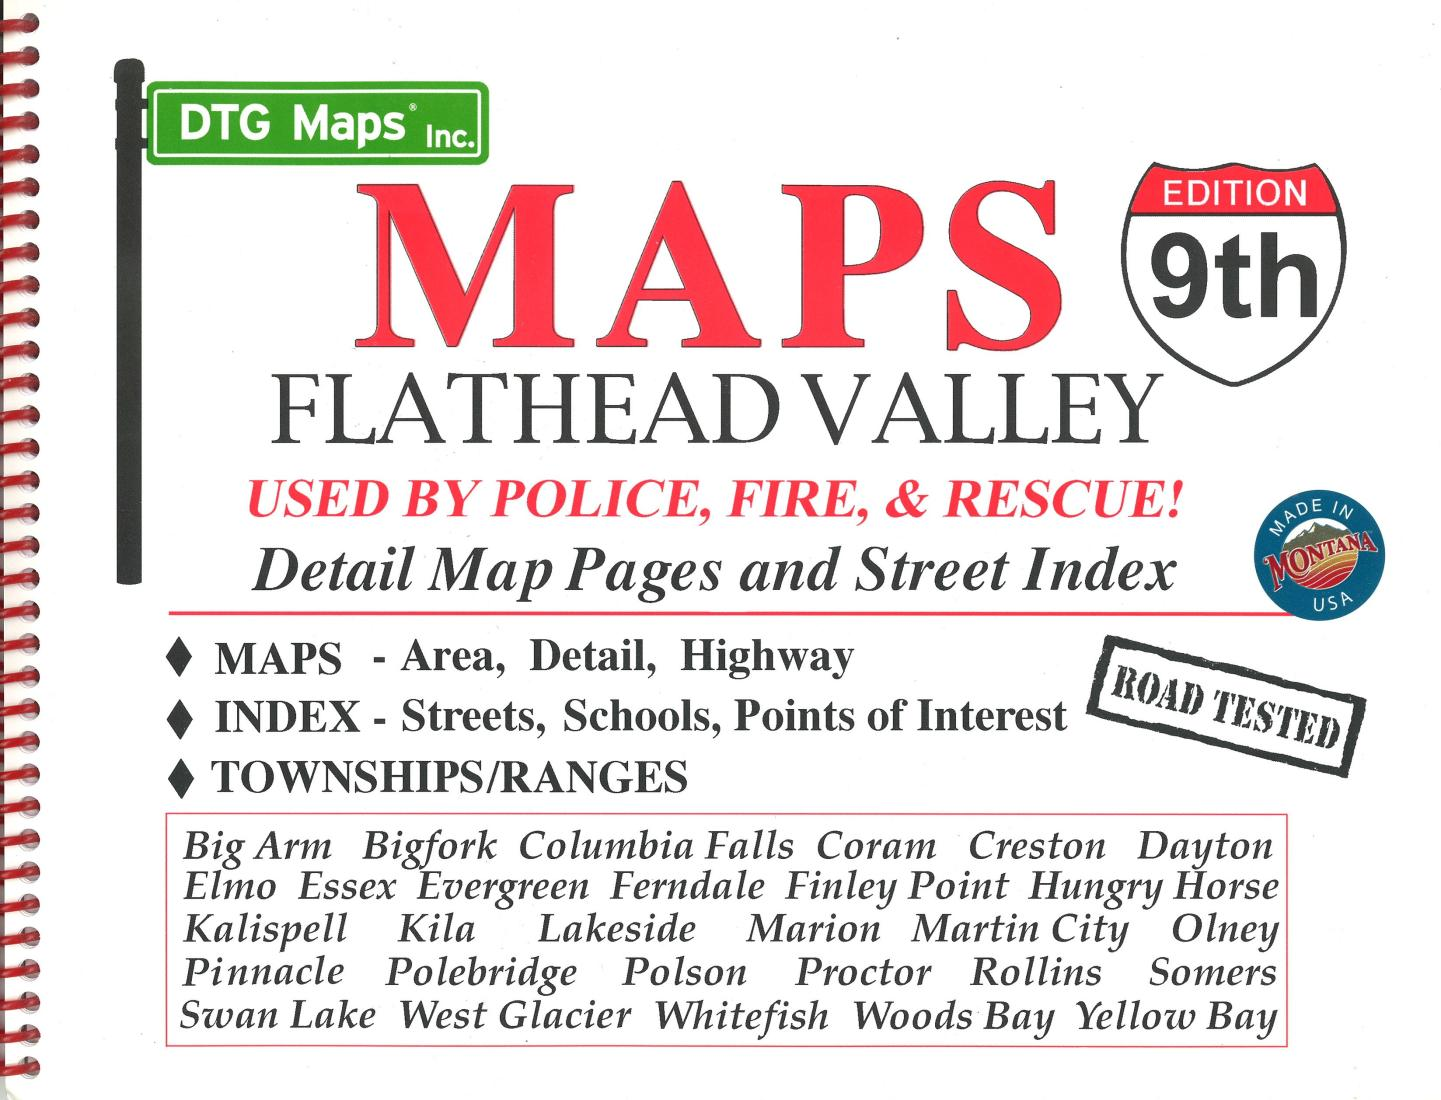 Flathead Valley, Montana Atlas by DTG Maps on street map lowell ma, street map lincoln ne, street map lake havasu city az, street map lake charles la, street map kennewick wa, street map long beach ms, street map janesville wi, street map joplin mo, street map kissimmee fl, street map lubbock tx, street map levittown ny, street map la mesa ca, street map las cruces nm, street map liberty mo, street map lafayette la, street map loveland co, street map of kent wa, street map jamestown nd, street map littleton co, street map longmont co,